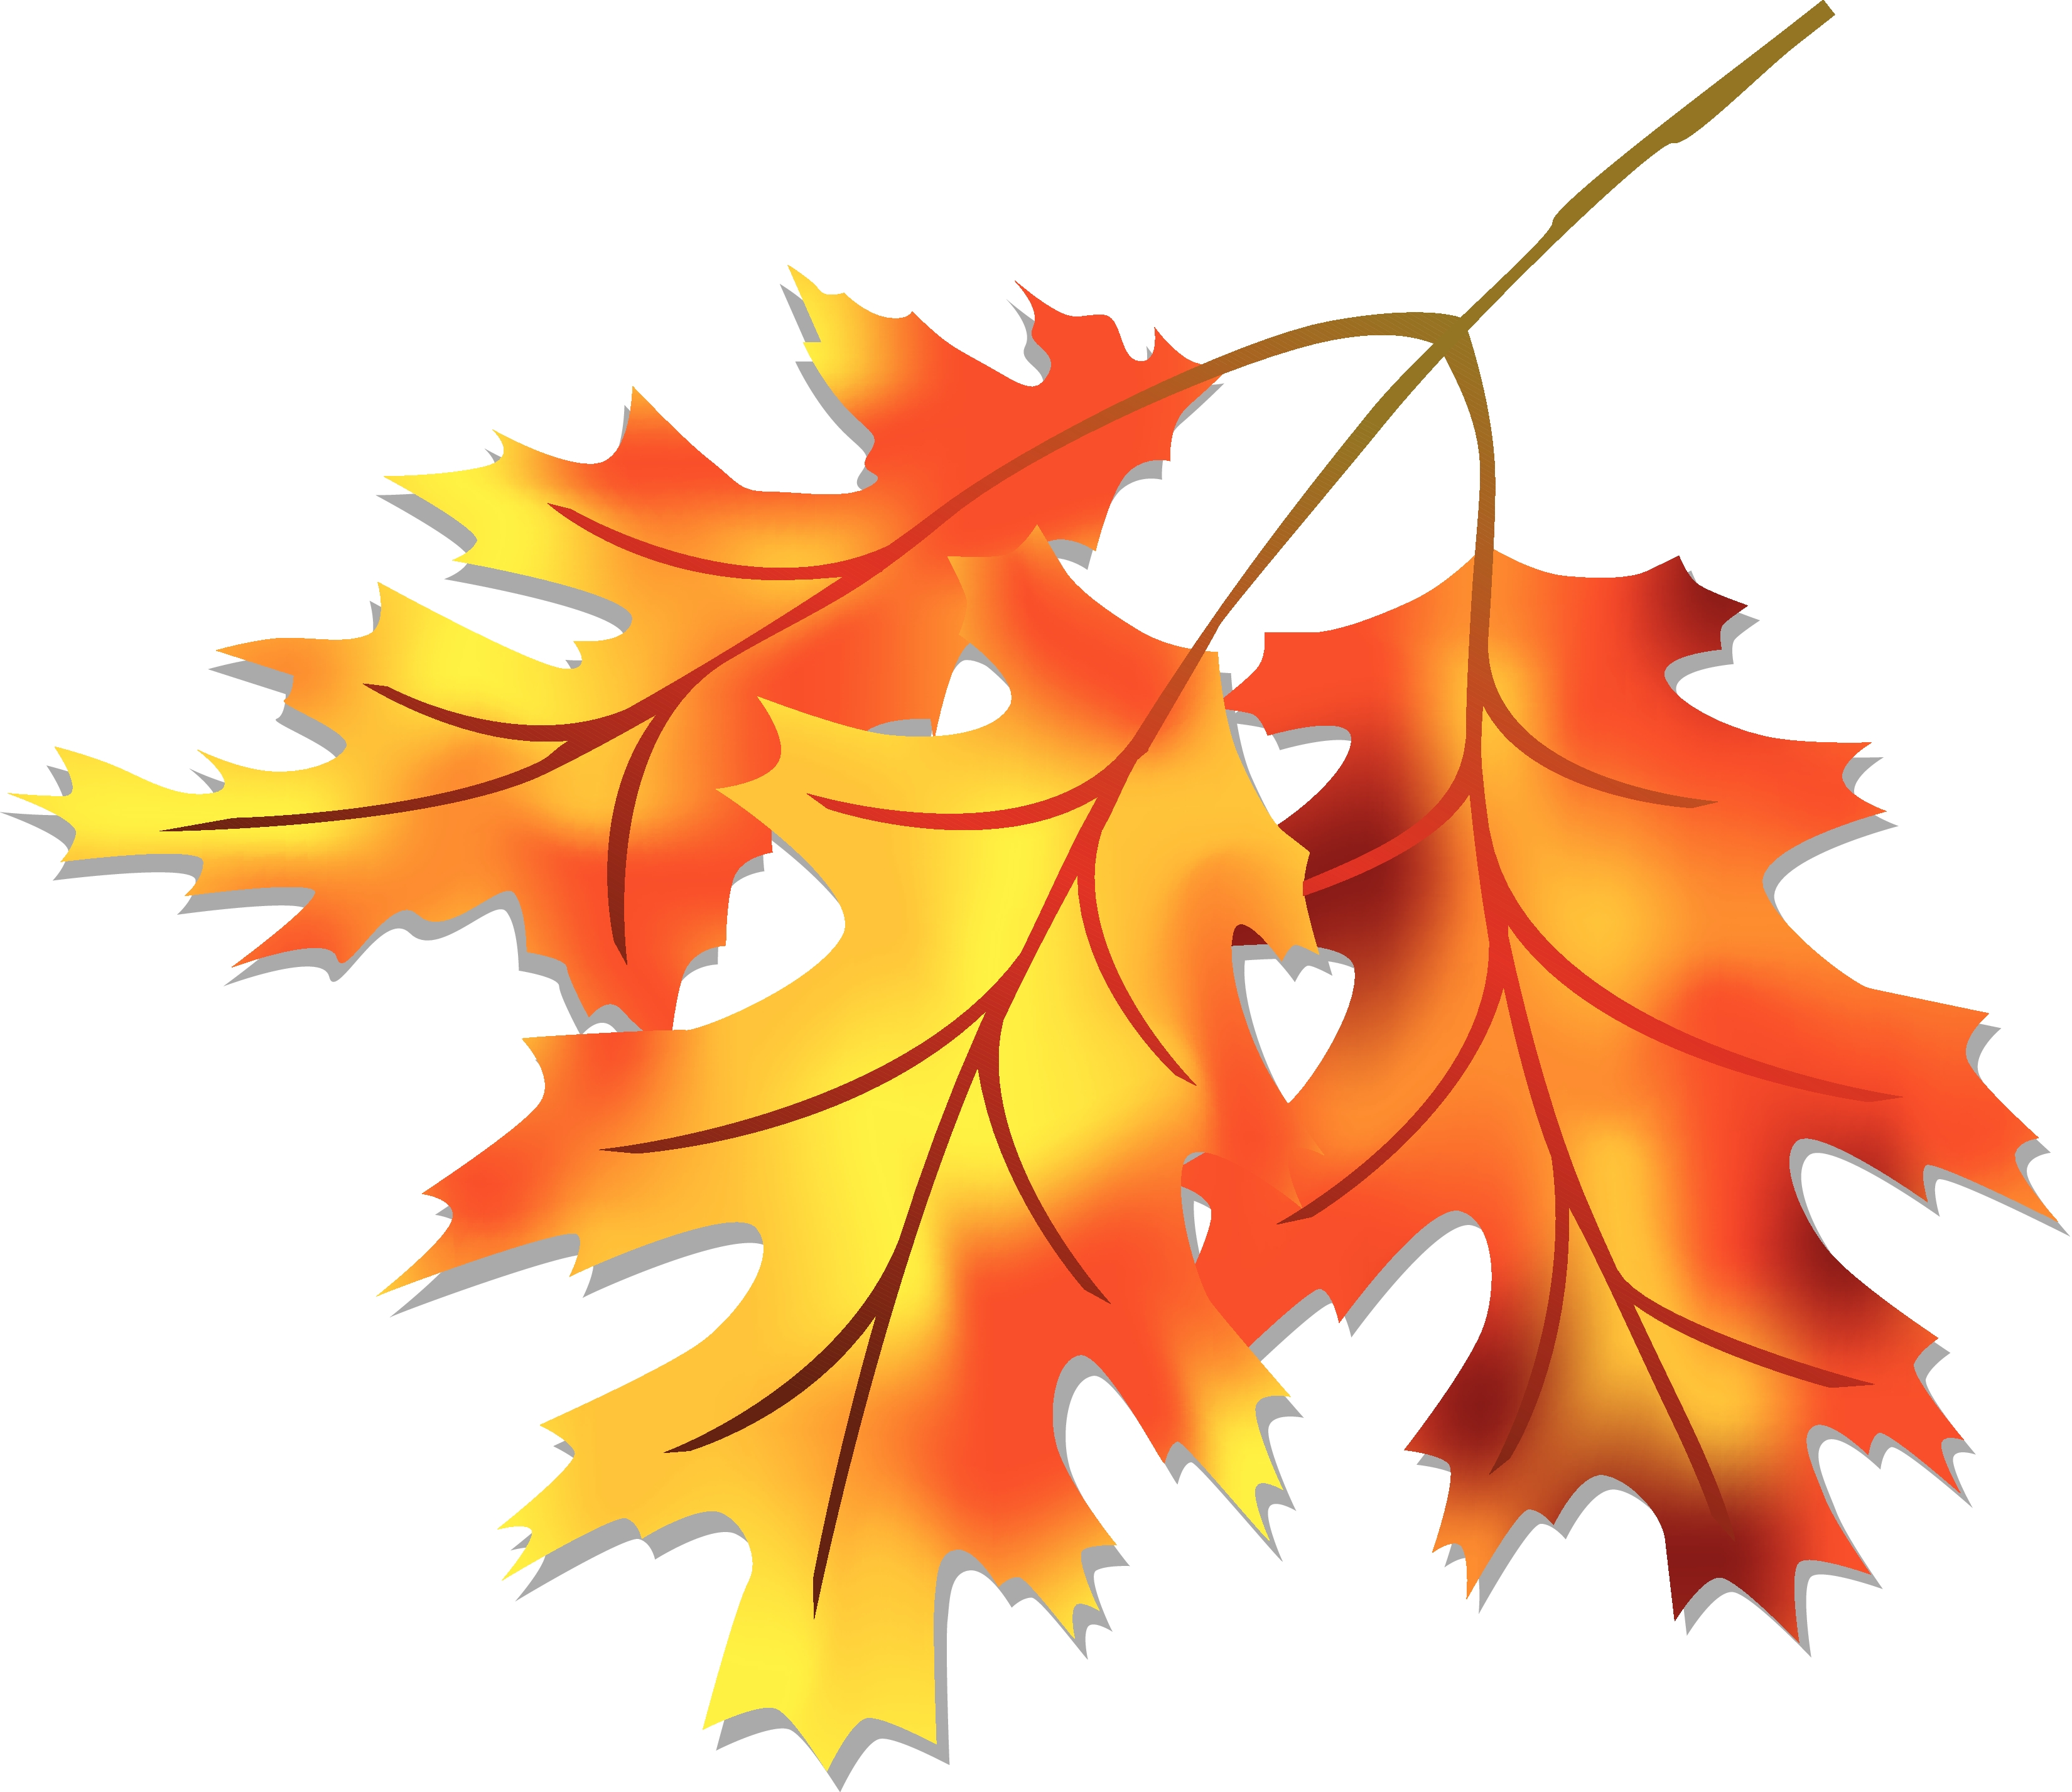 Pix For > Falling Leaves Clip Art